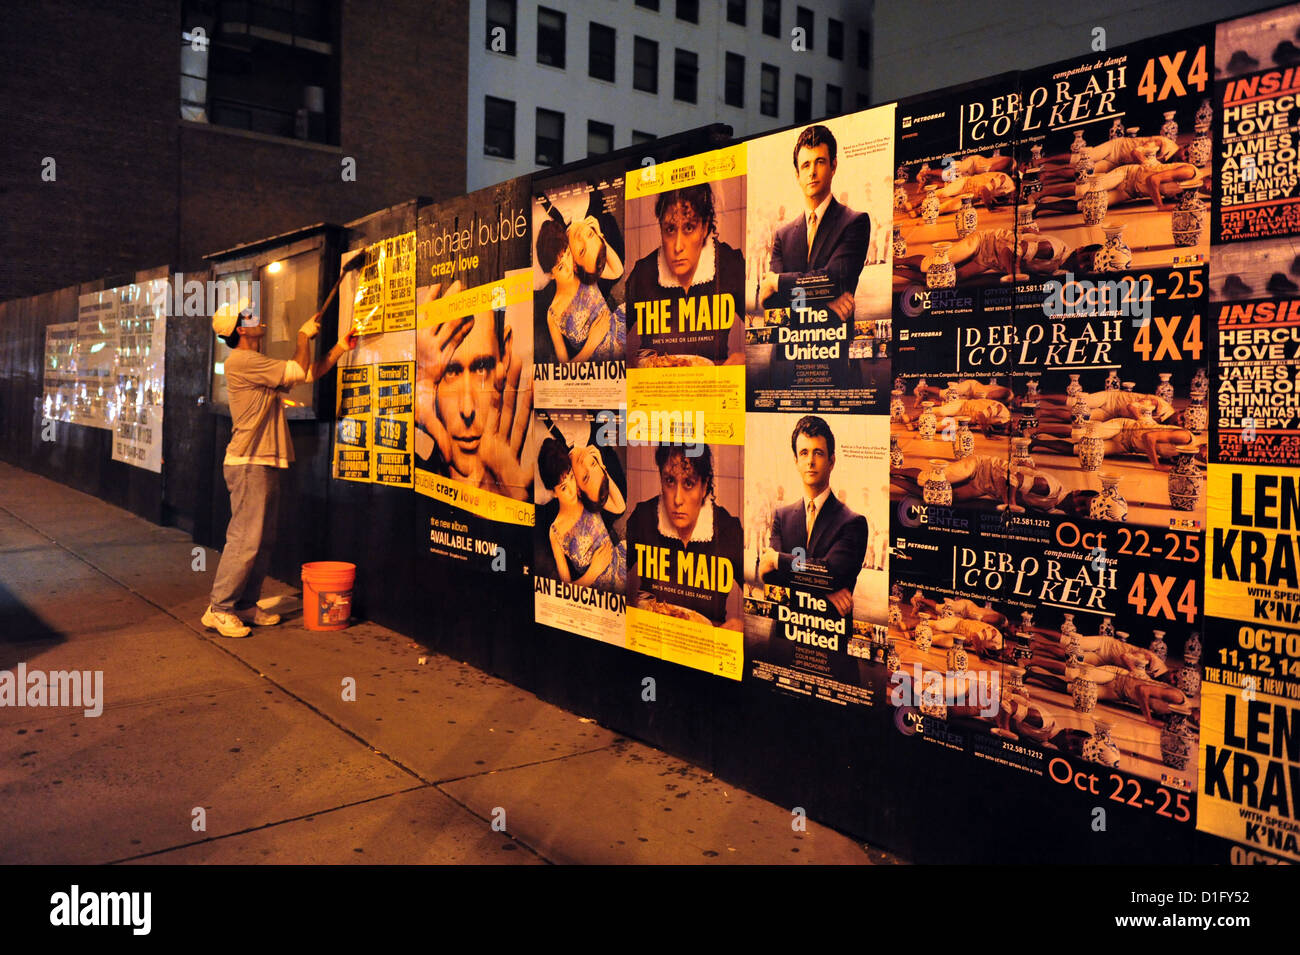 Man hanging poster on a street billboard on October 10 2009 in Manhattan New York. - Stock Image